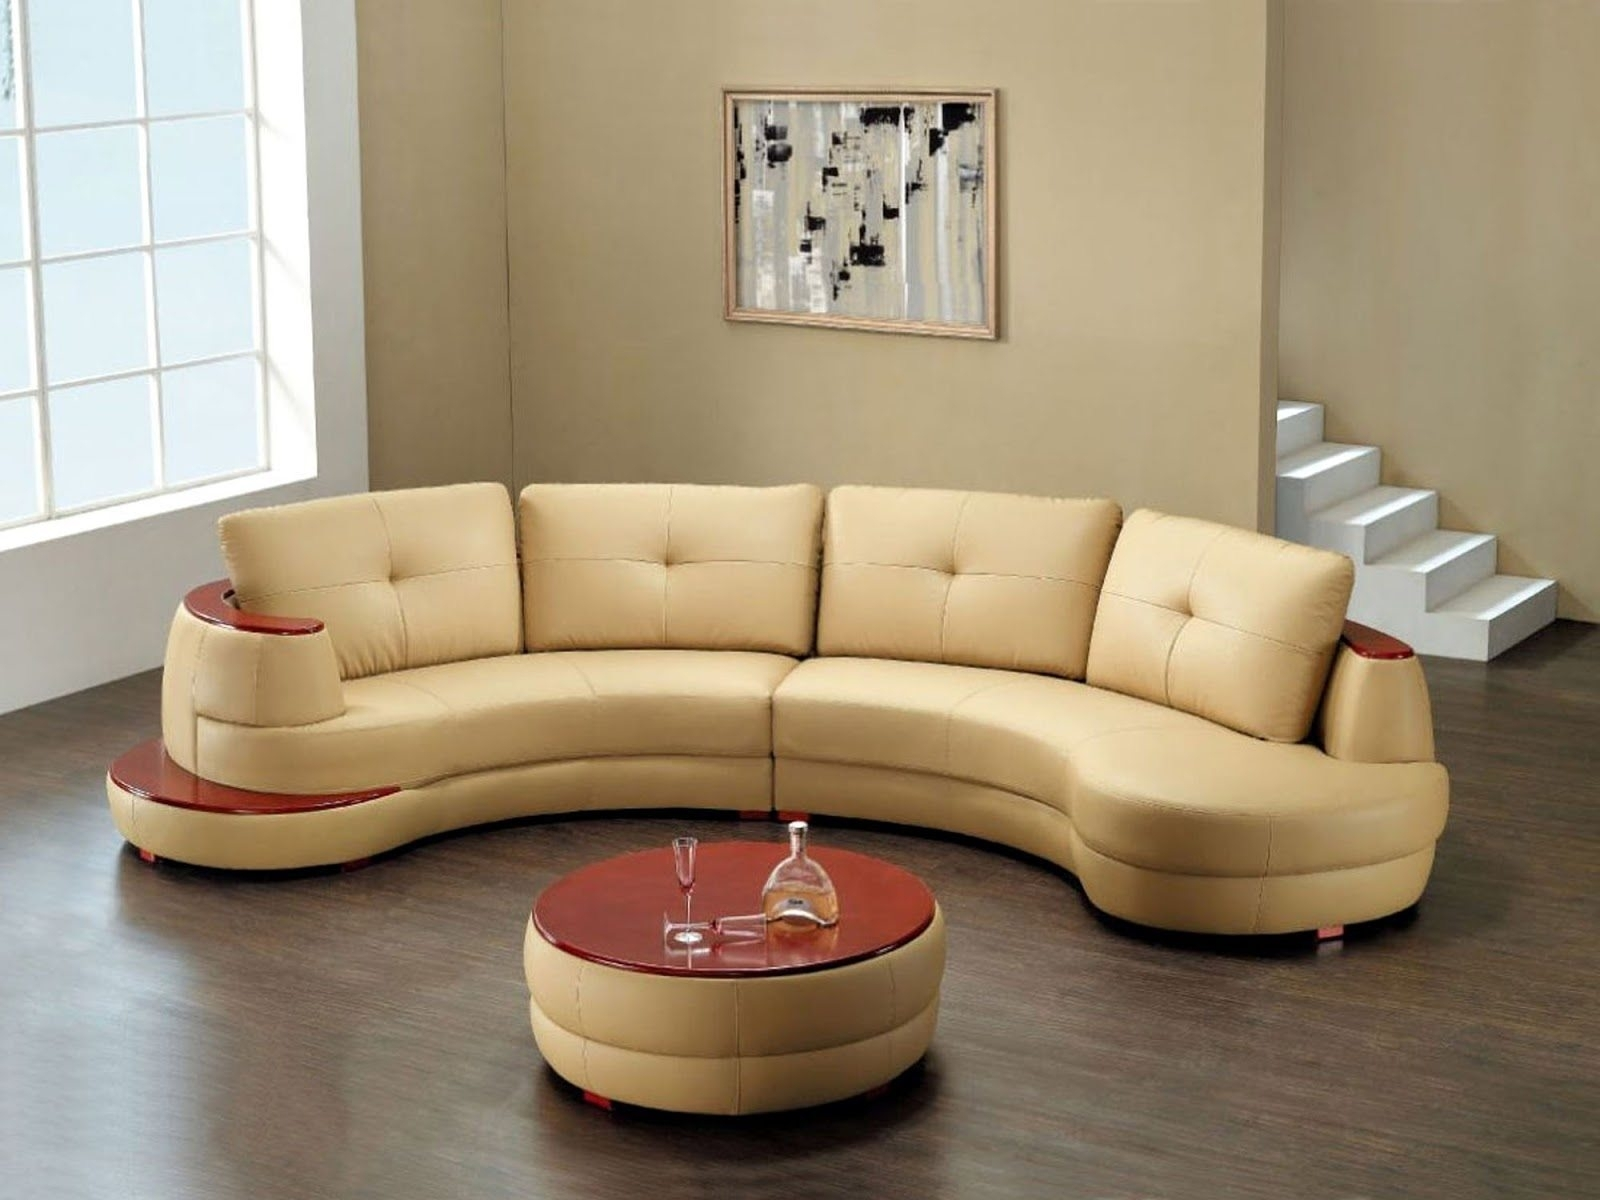 Good Sectional Sofas Jacksonville Fl 96 In Small Red Sectional Sofa in Jacksonville Fl Sectional Sofas (Image 3 of 10)